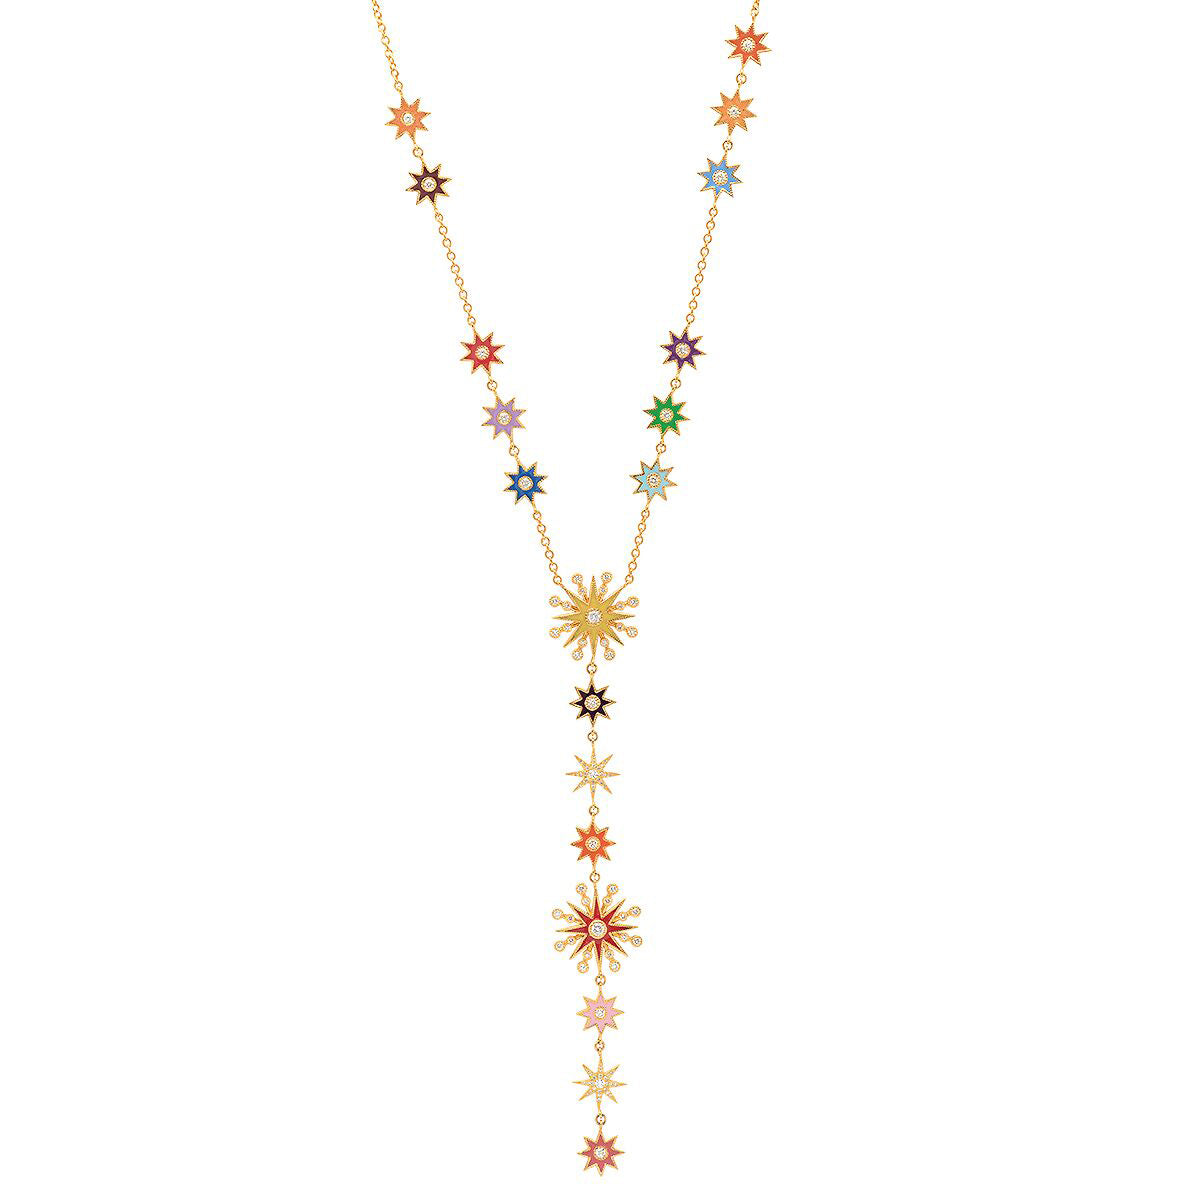 Star Lariat Necklace by Colette for Broken English Jewelry